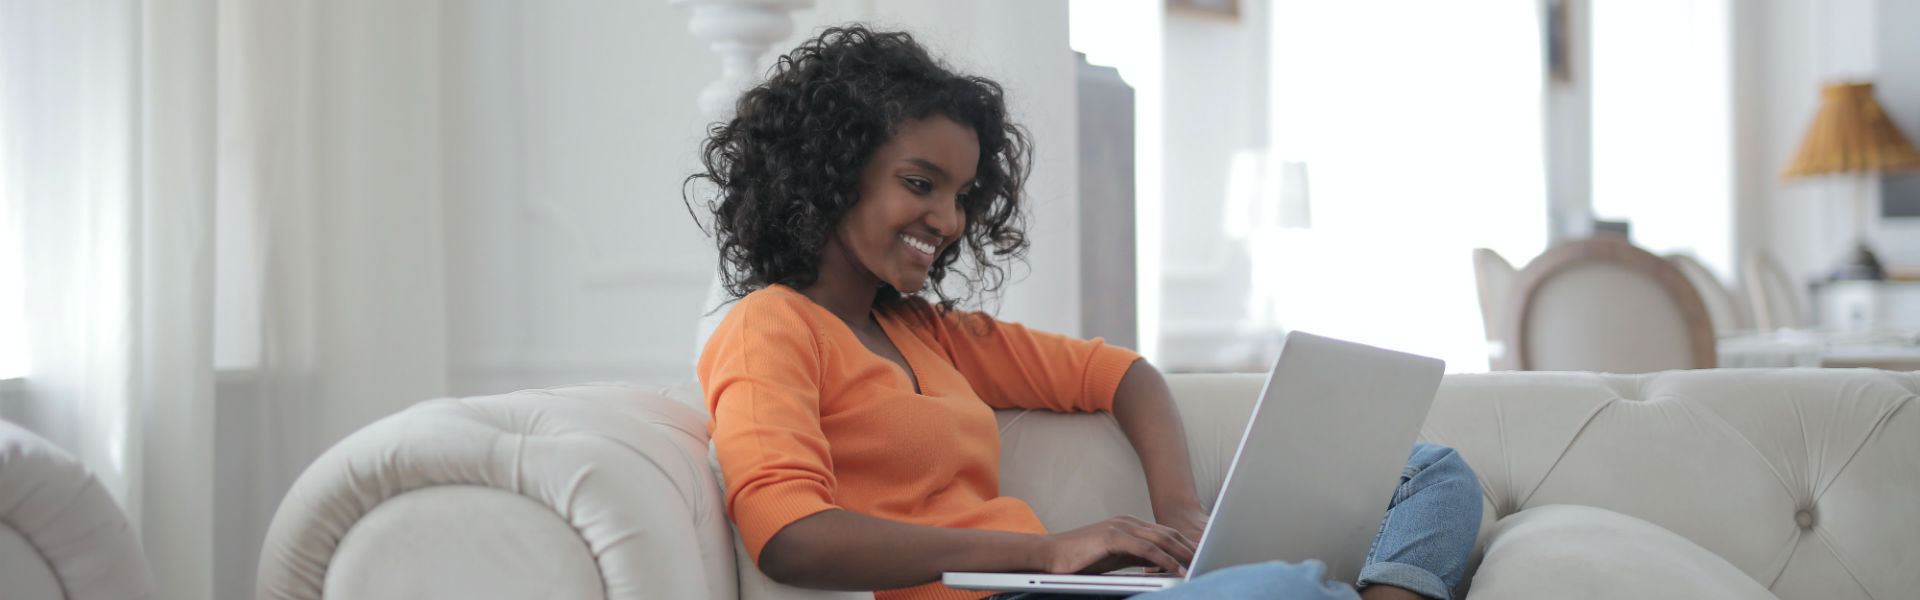 Work From Home Tips For Metro Detroit Workers